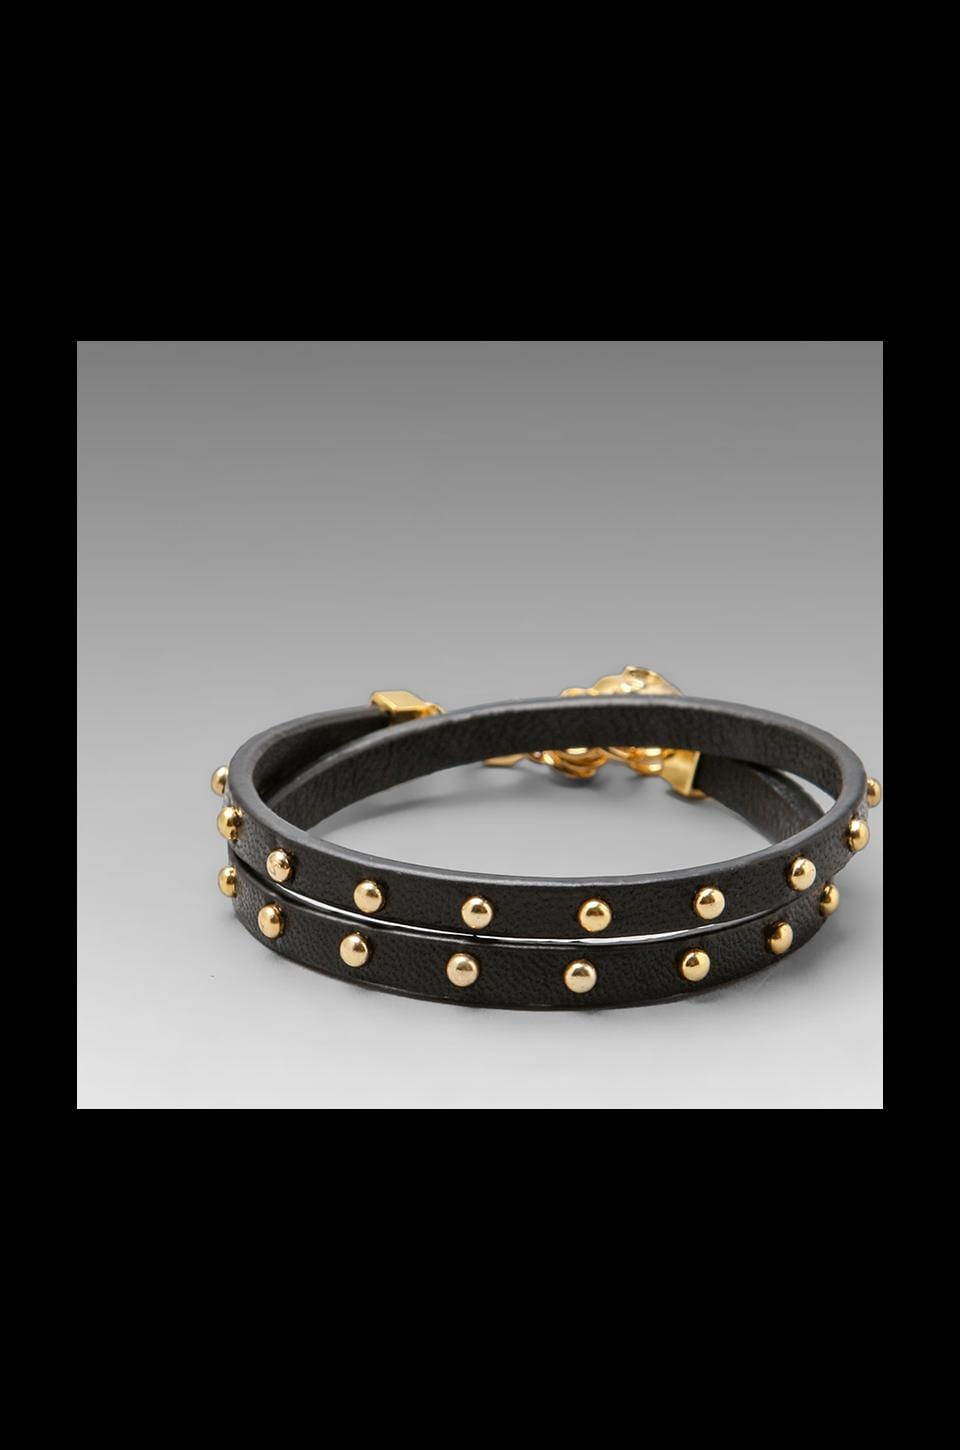 Juicy Couture Double Wrap Leather Bracelet in Black